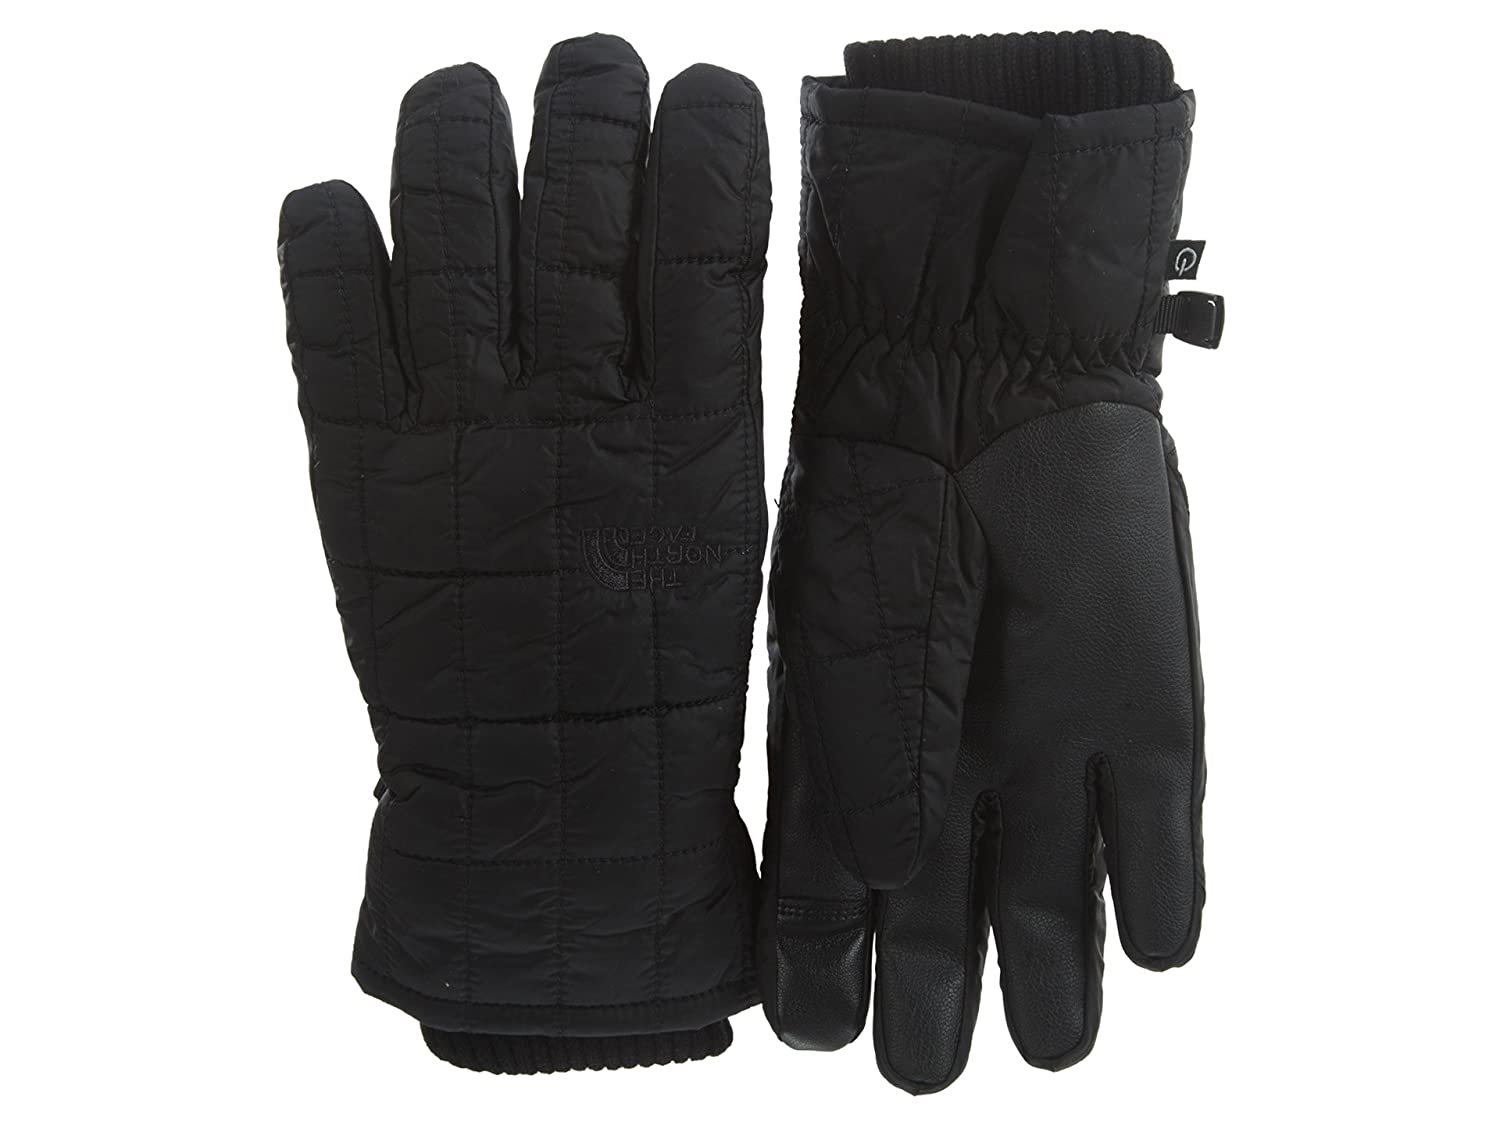 f0c3334bd7 Amazon.com: The North Face Women's Metropolis Etip¿ Glove Tnf Black (Prior  Season) SM: Sports & Outdoors